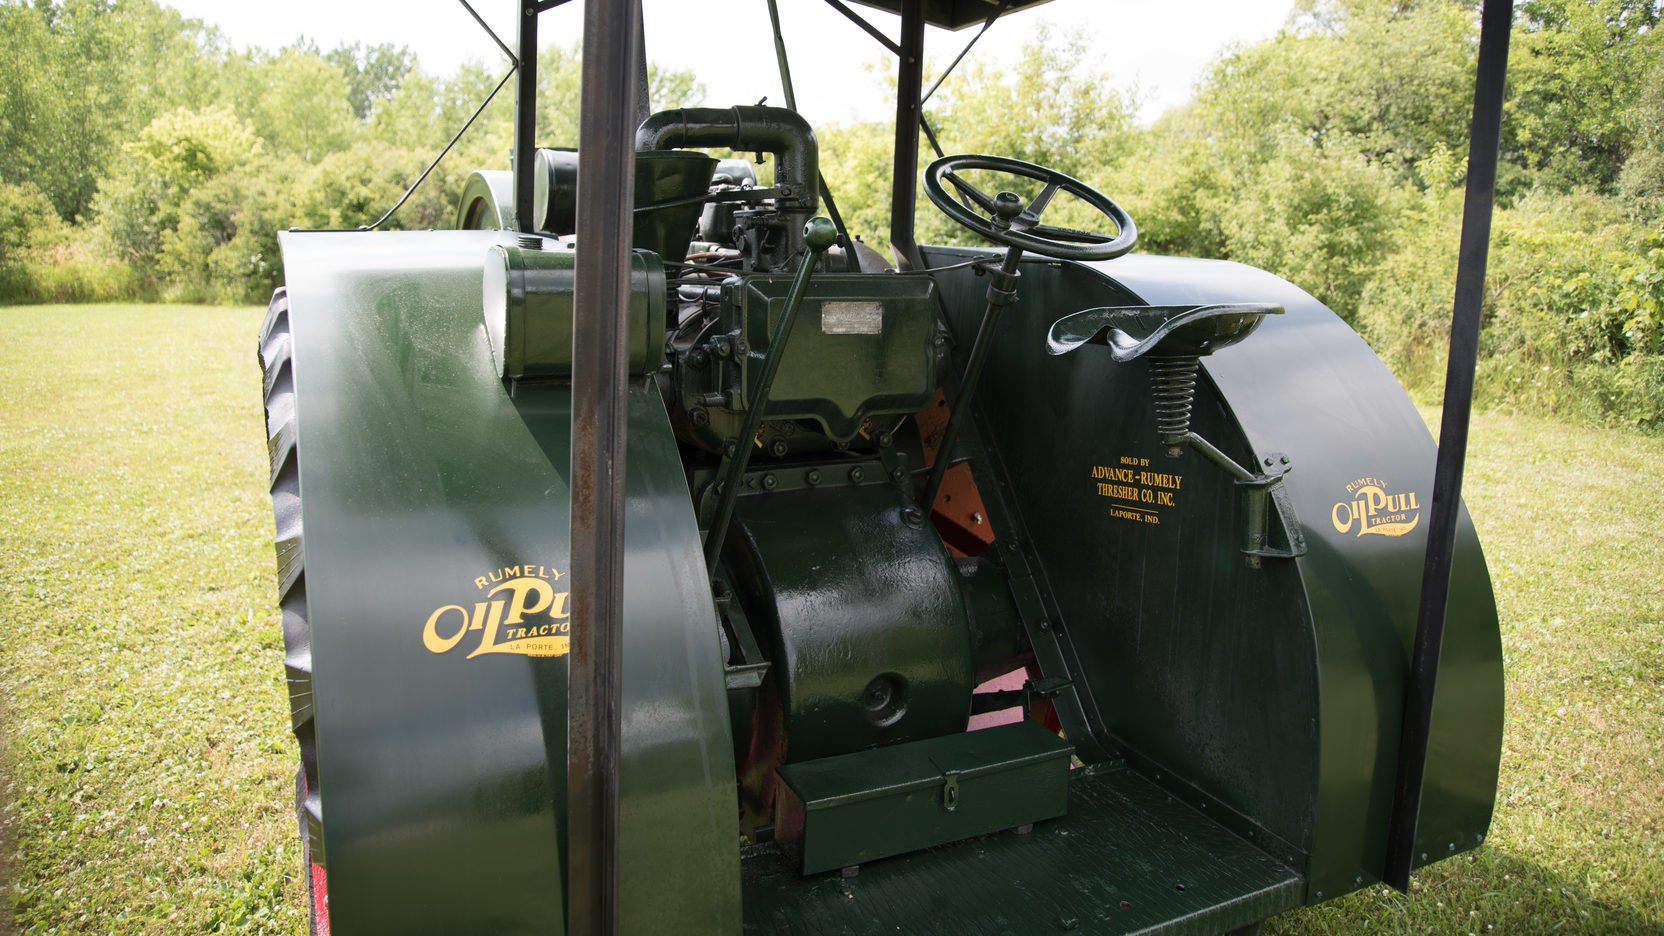 The controls of the Rumely Oil Pull are even more simple than those of a steam traction engine.